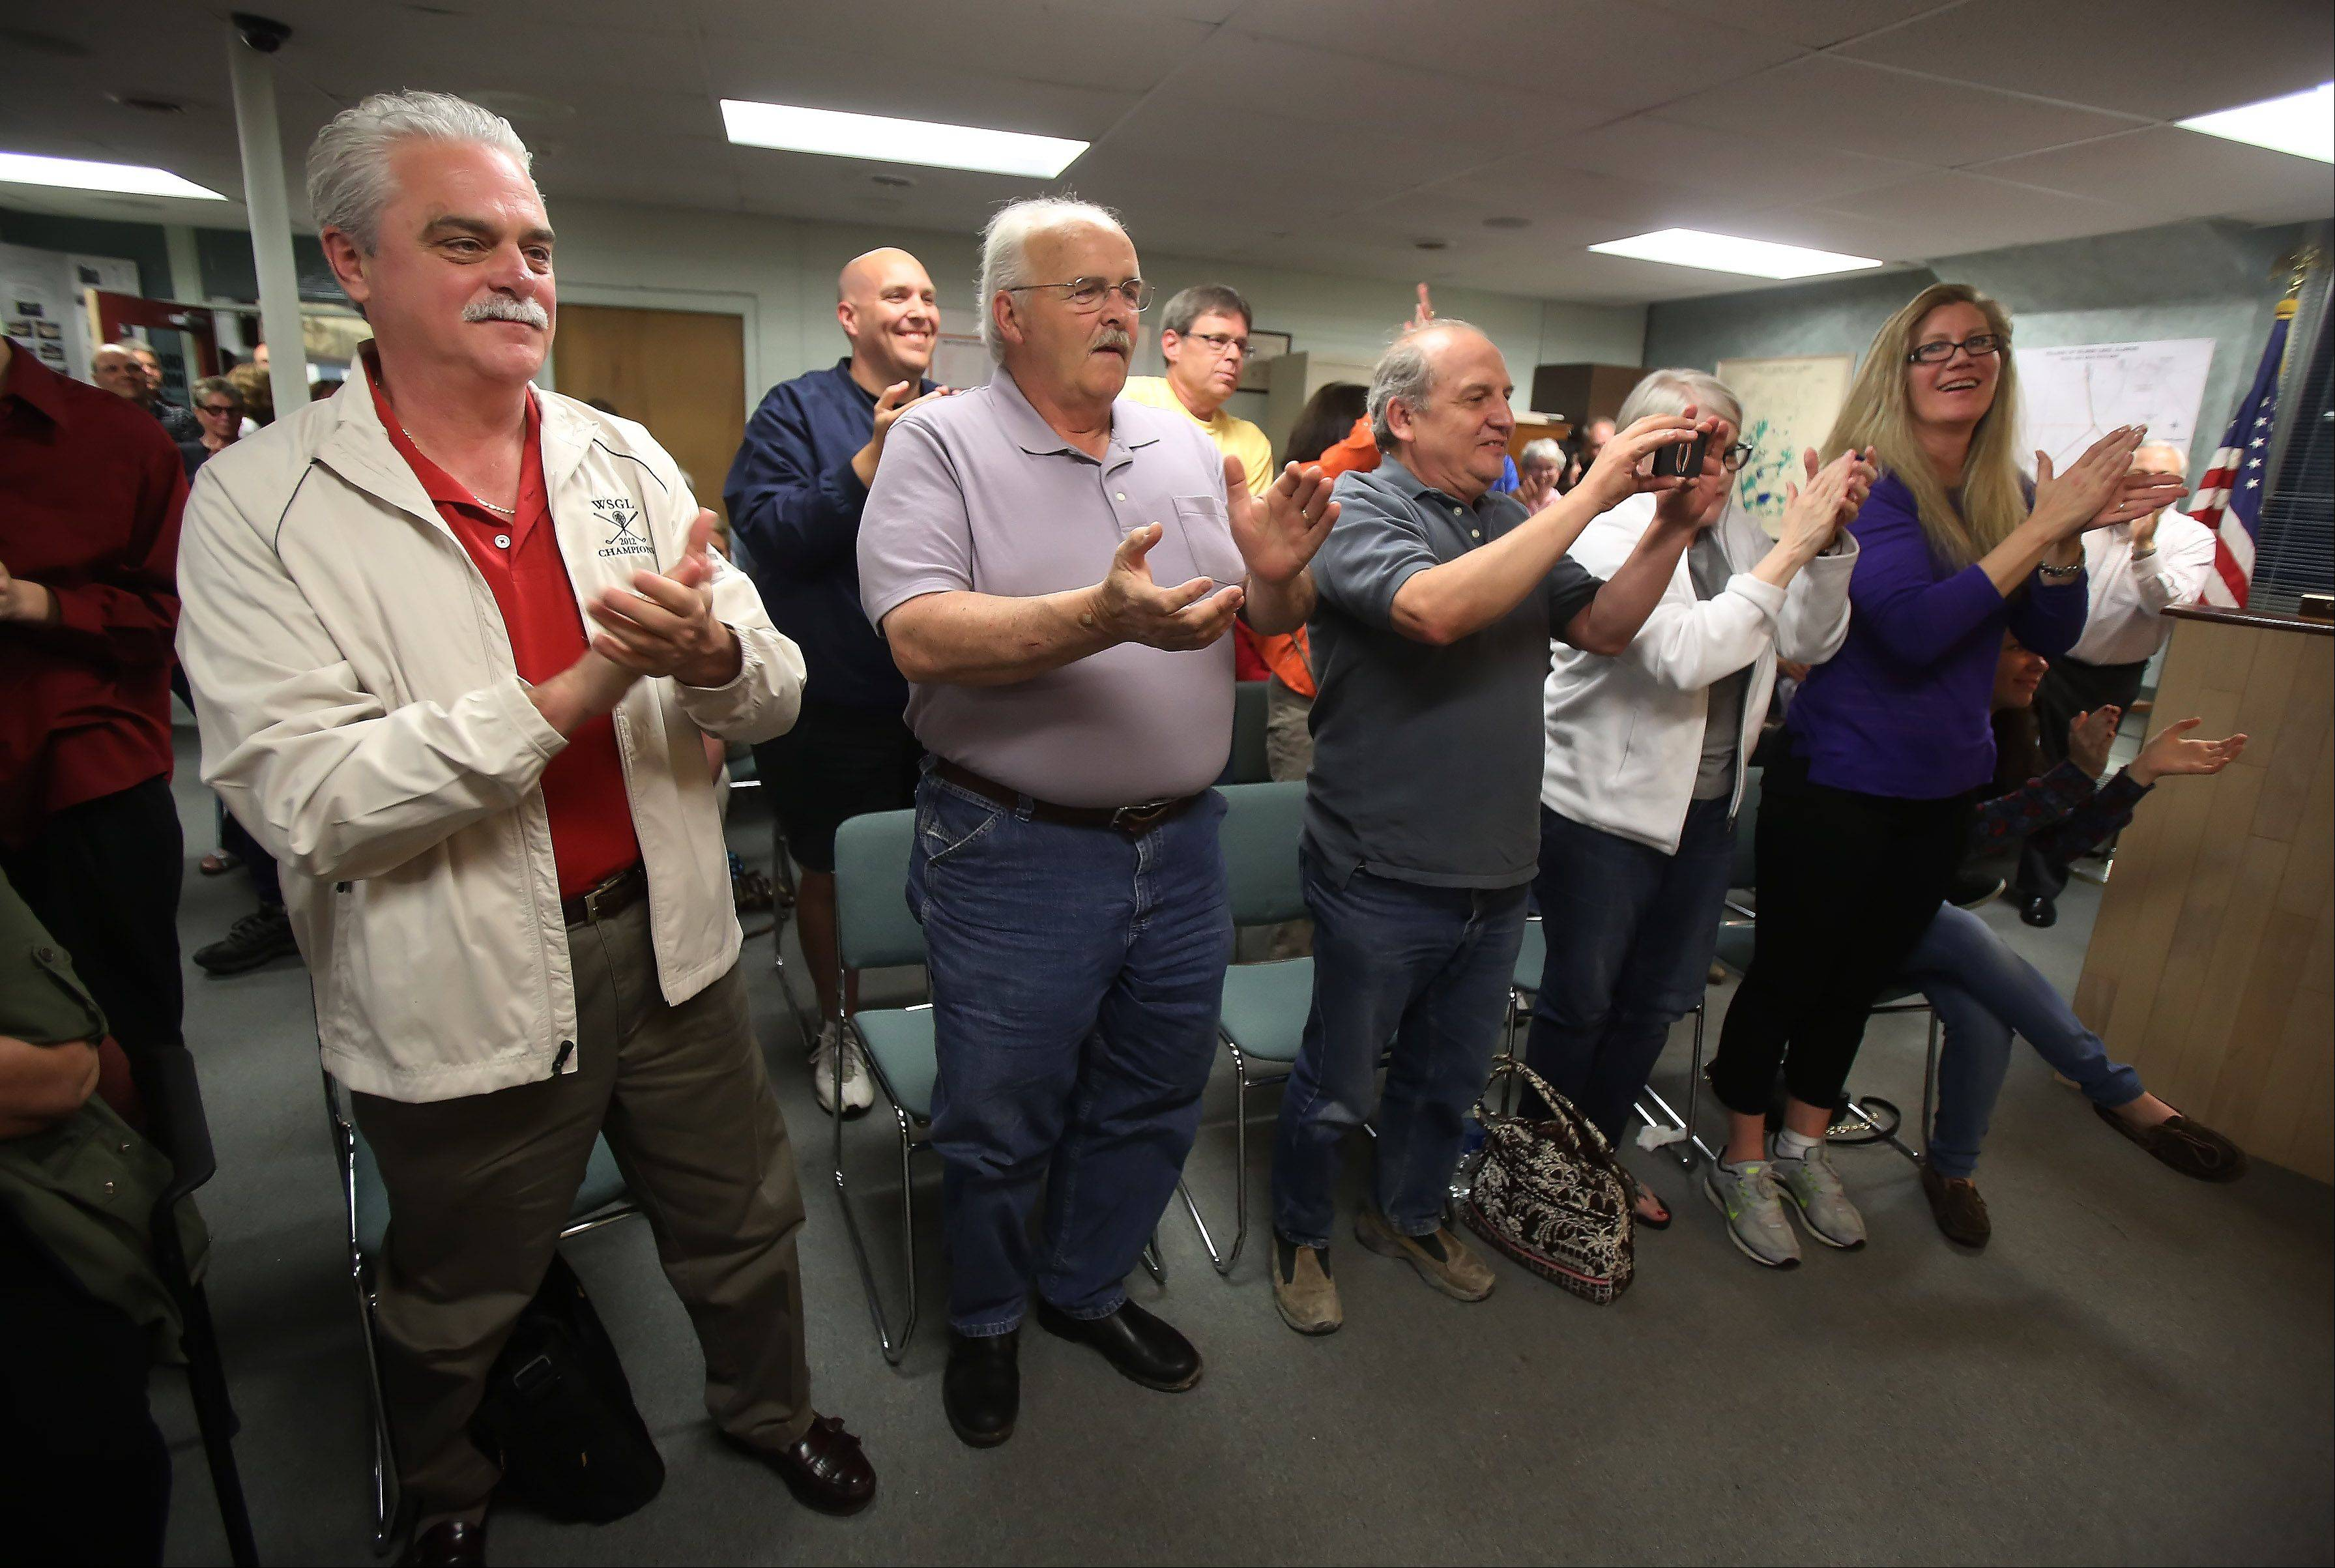 Gilbert R. Boucher II/gboucher@dailyherald.comA packed house breaks into applause Thursday after Charles Amrich is sworn in as the new Island Lake mayor at the village hall.